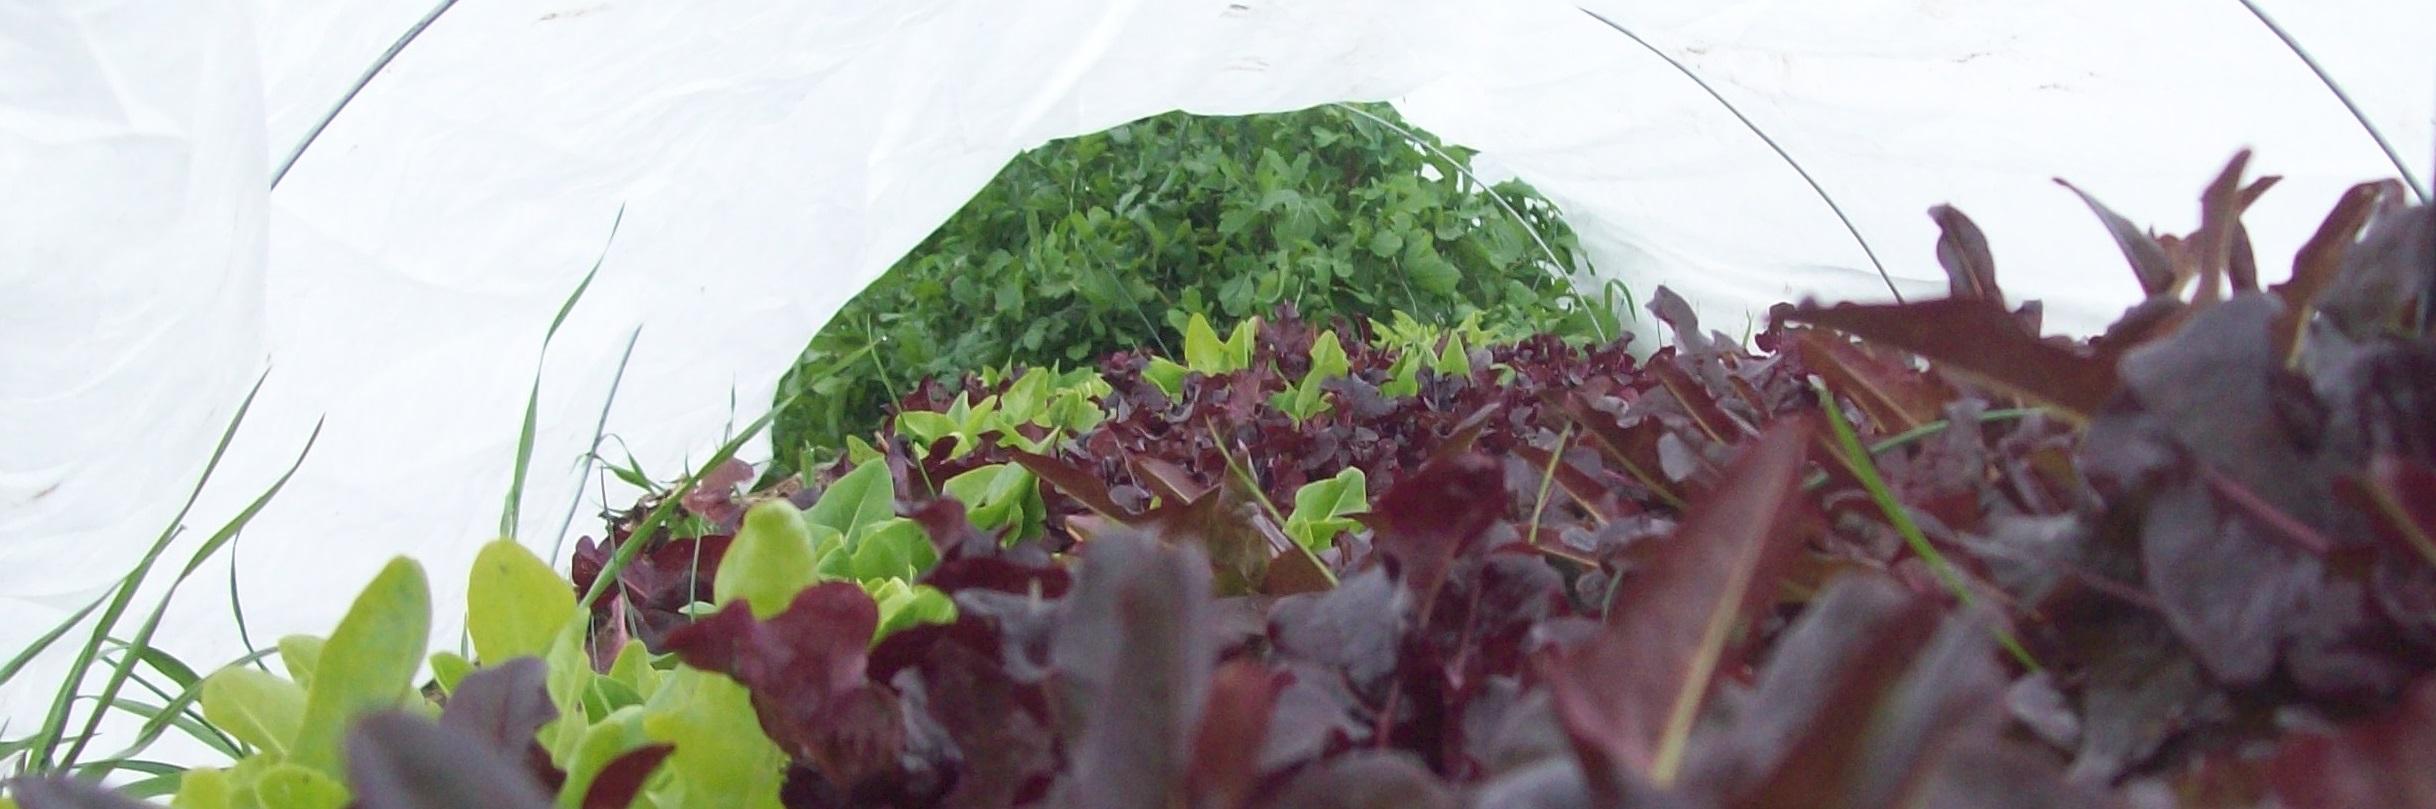 Salad Mix under row cover